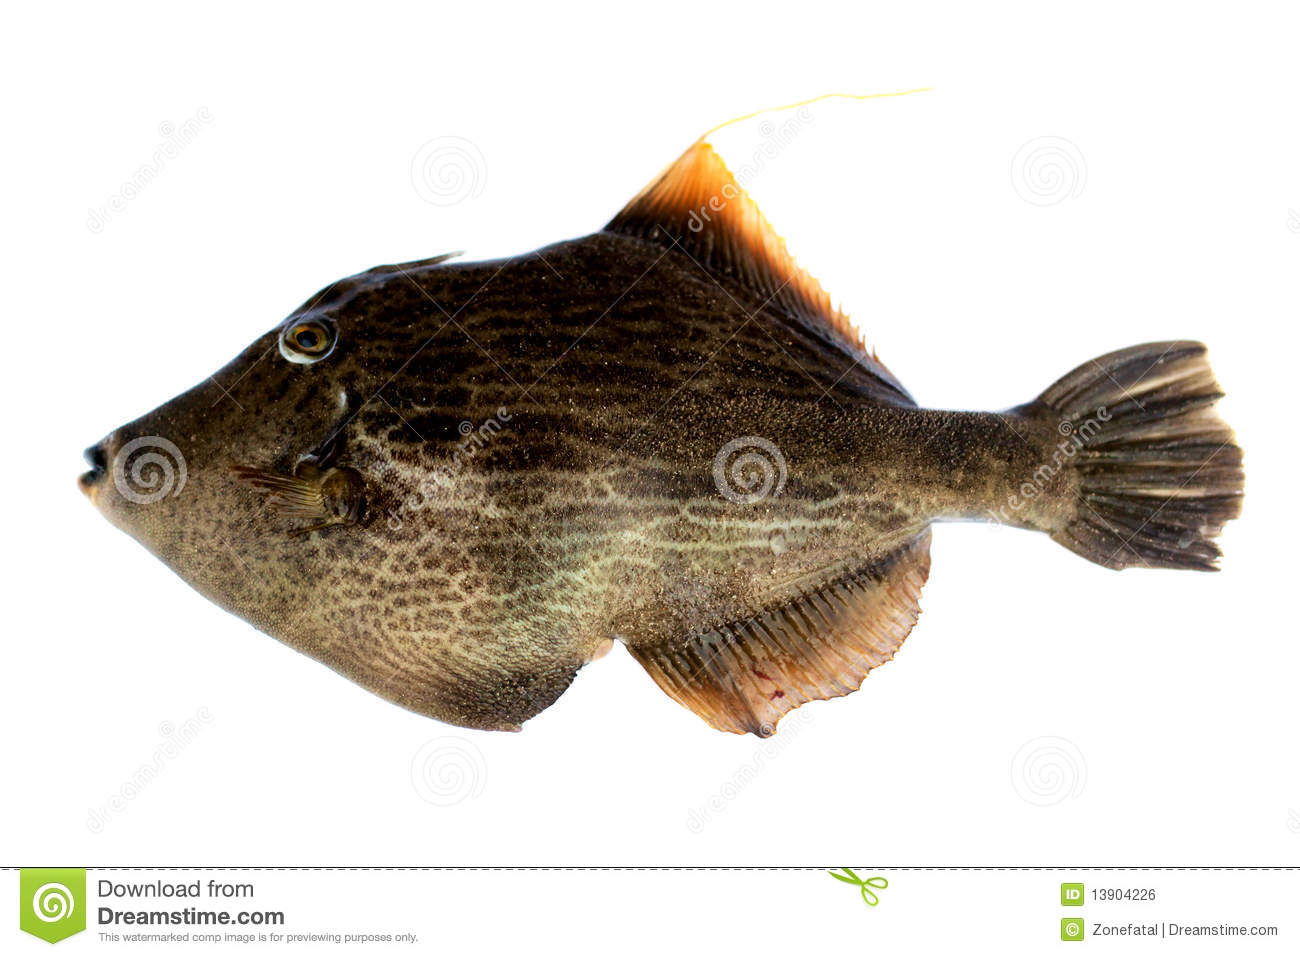 Pig fish stock photo image of dining freshness eating for Dreaming of eating fish